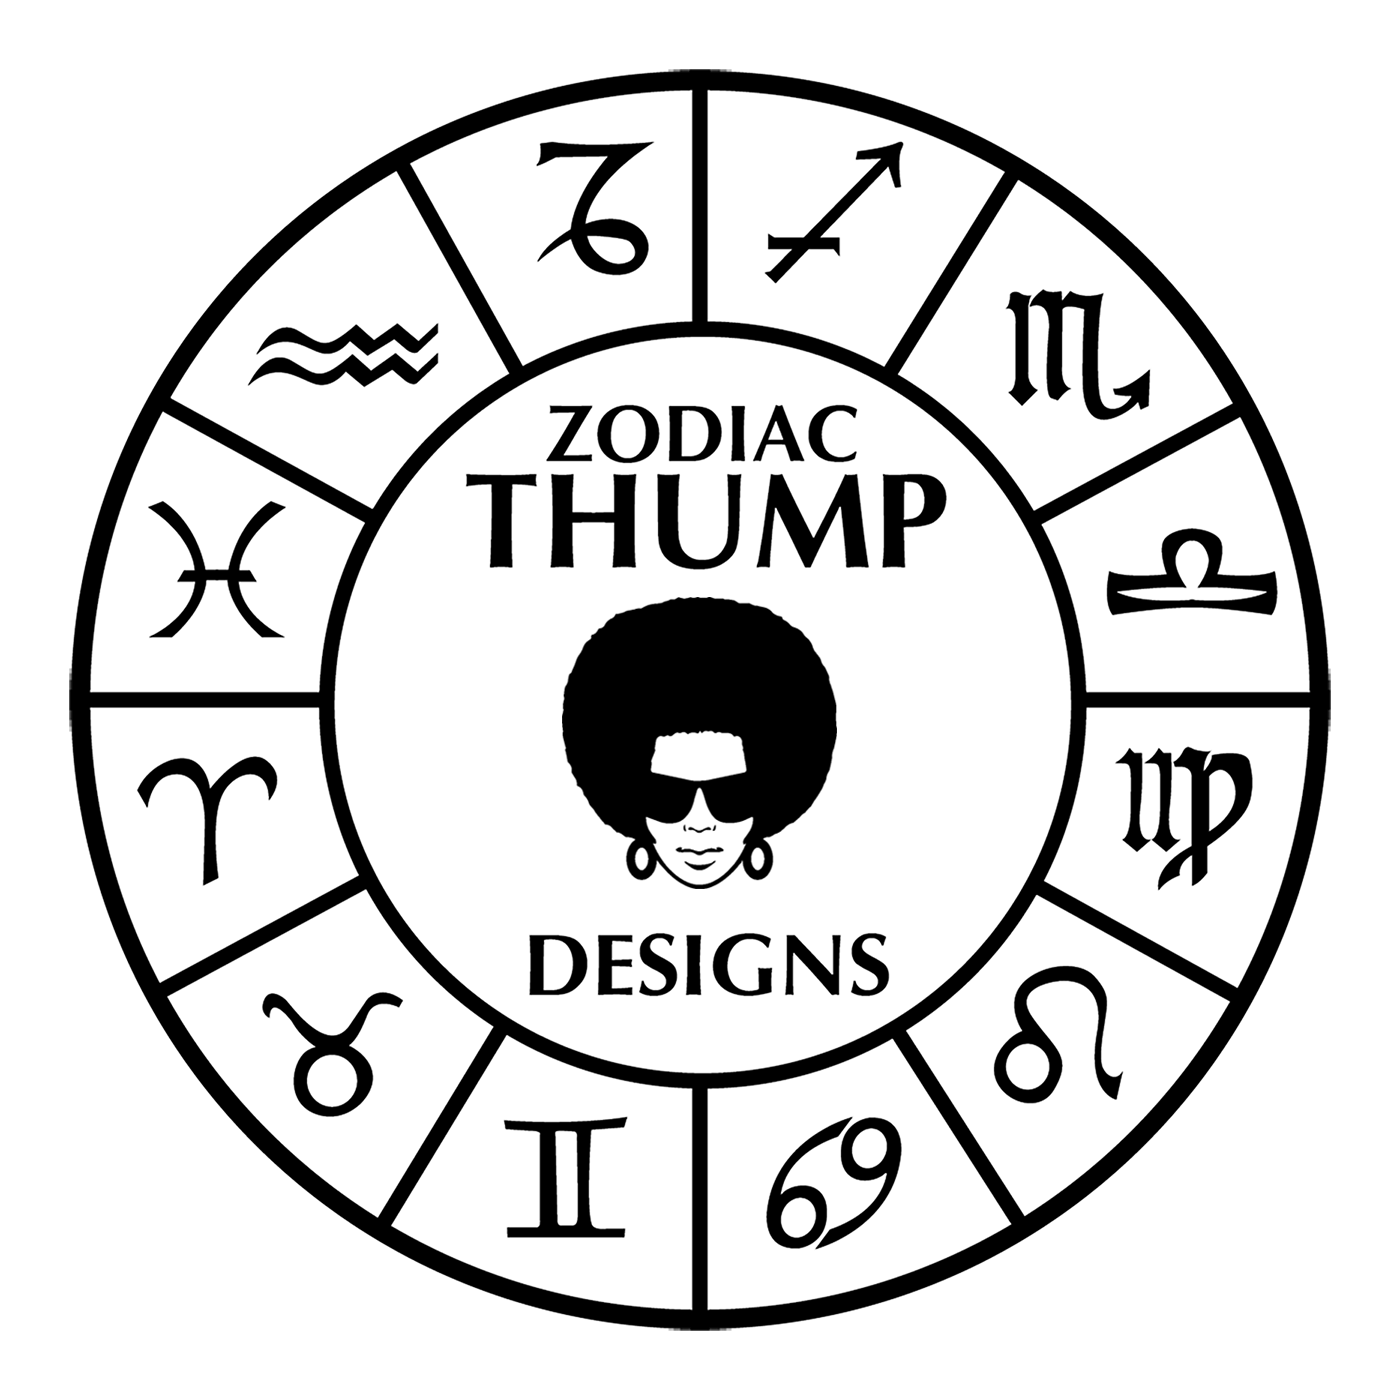 Zodiac Thump Designs